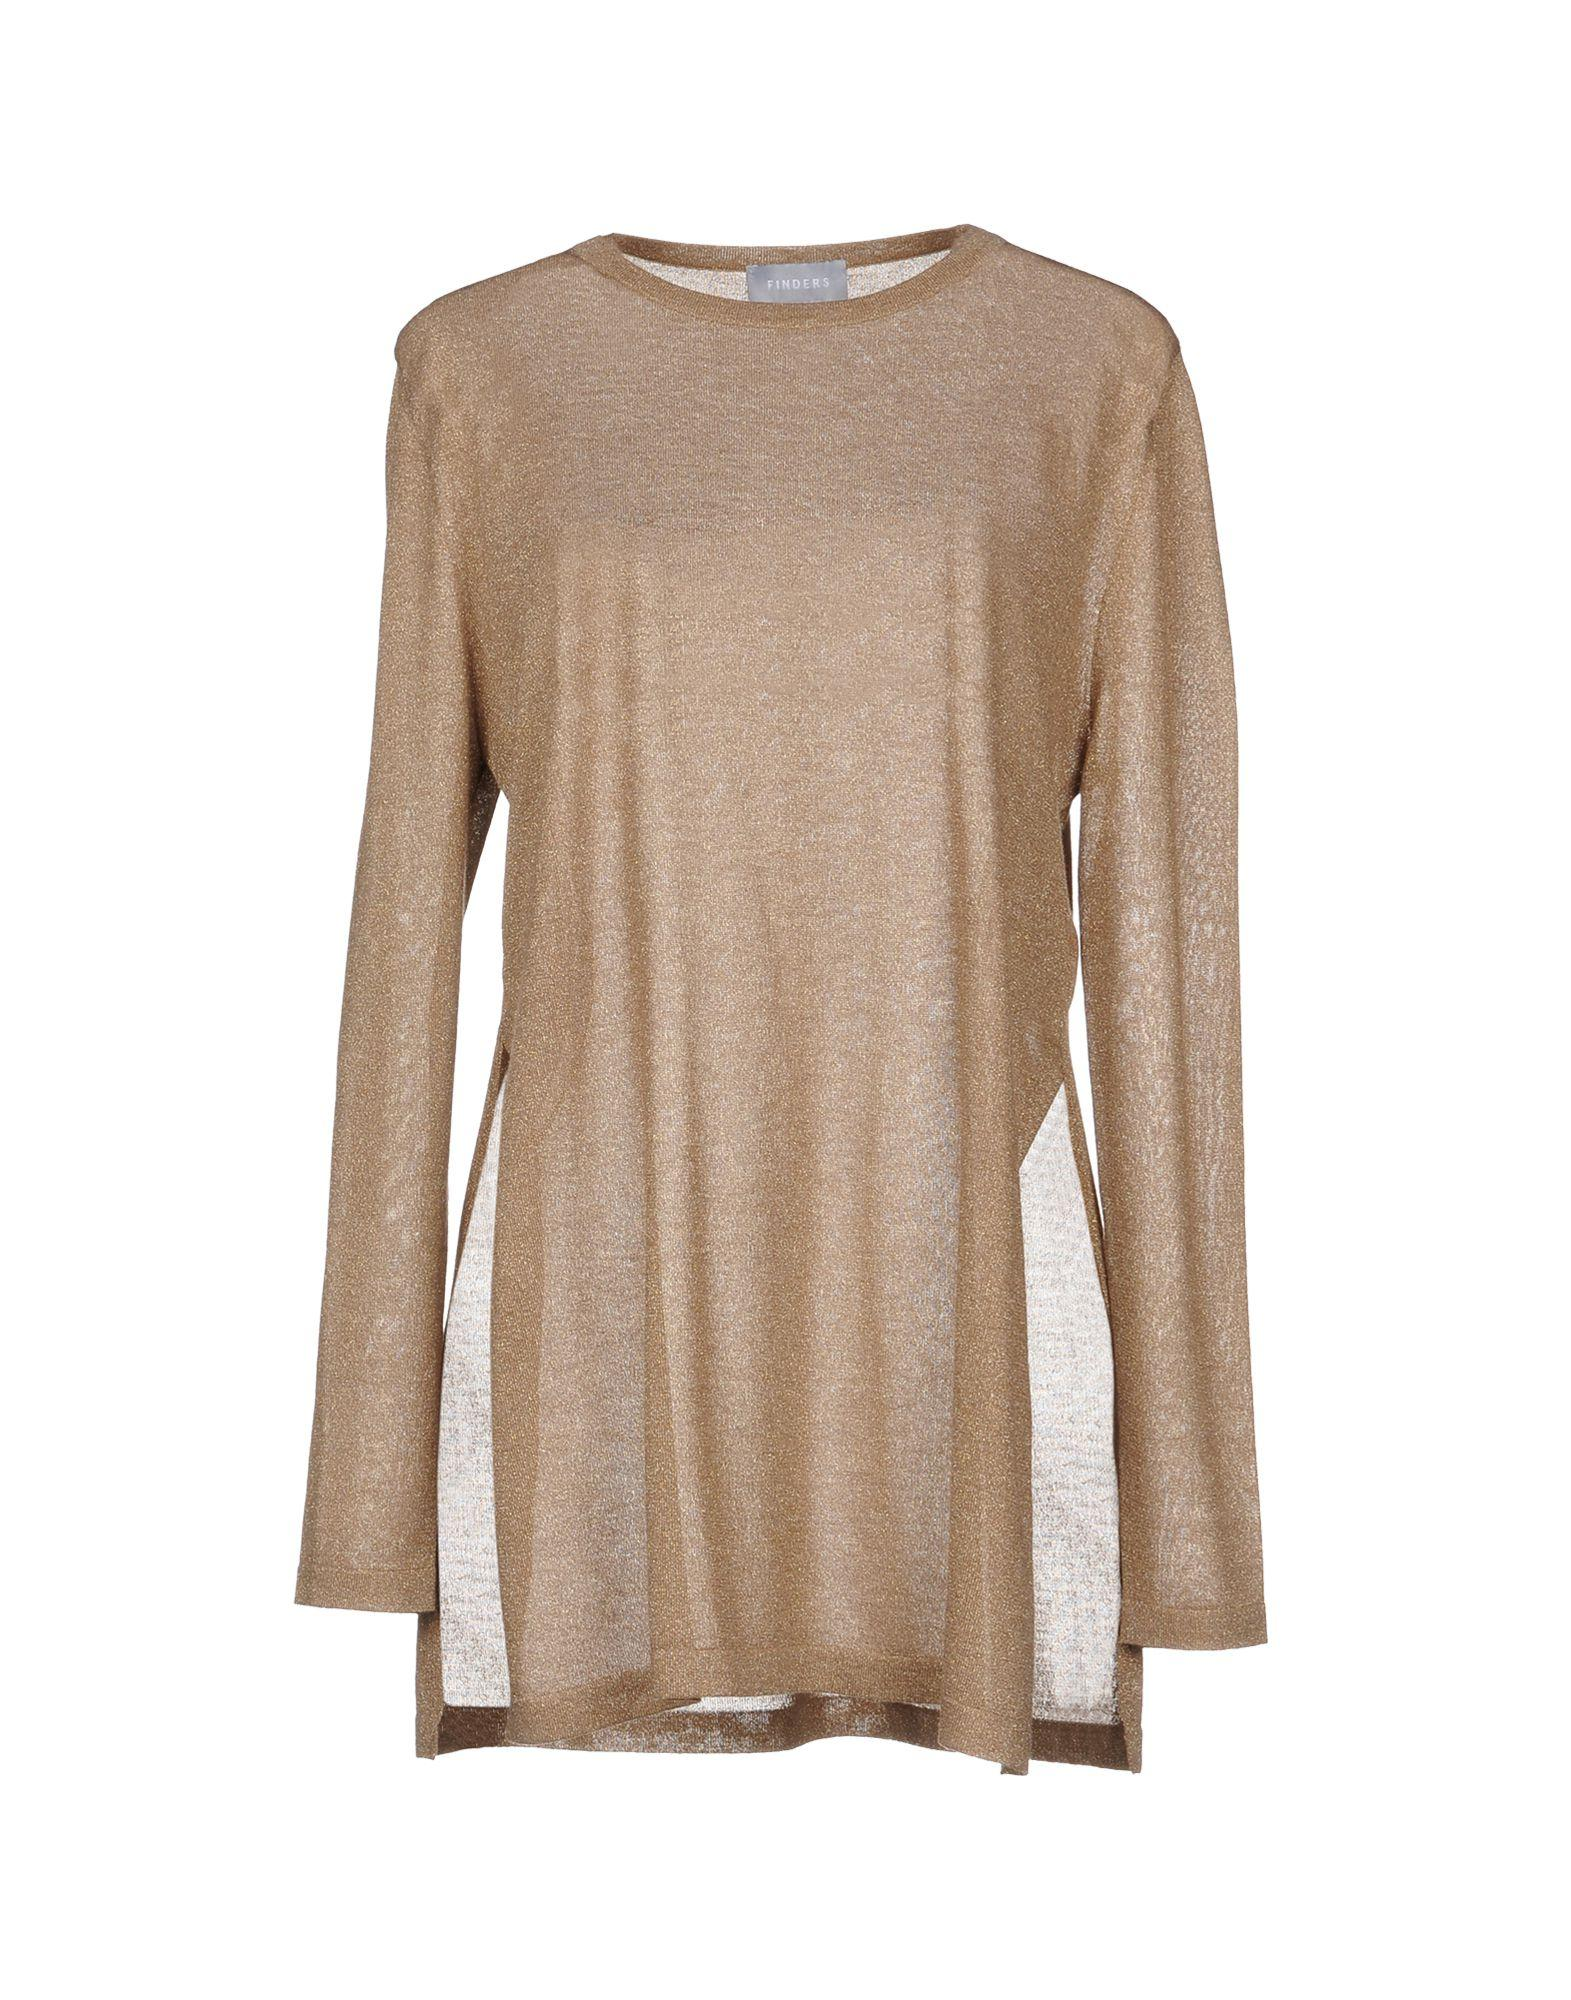 Finders Keepers Sweater In Khaki